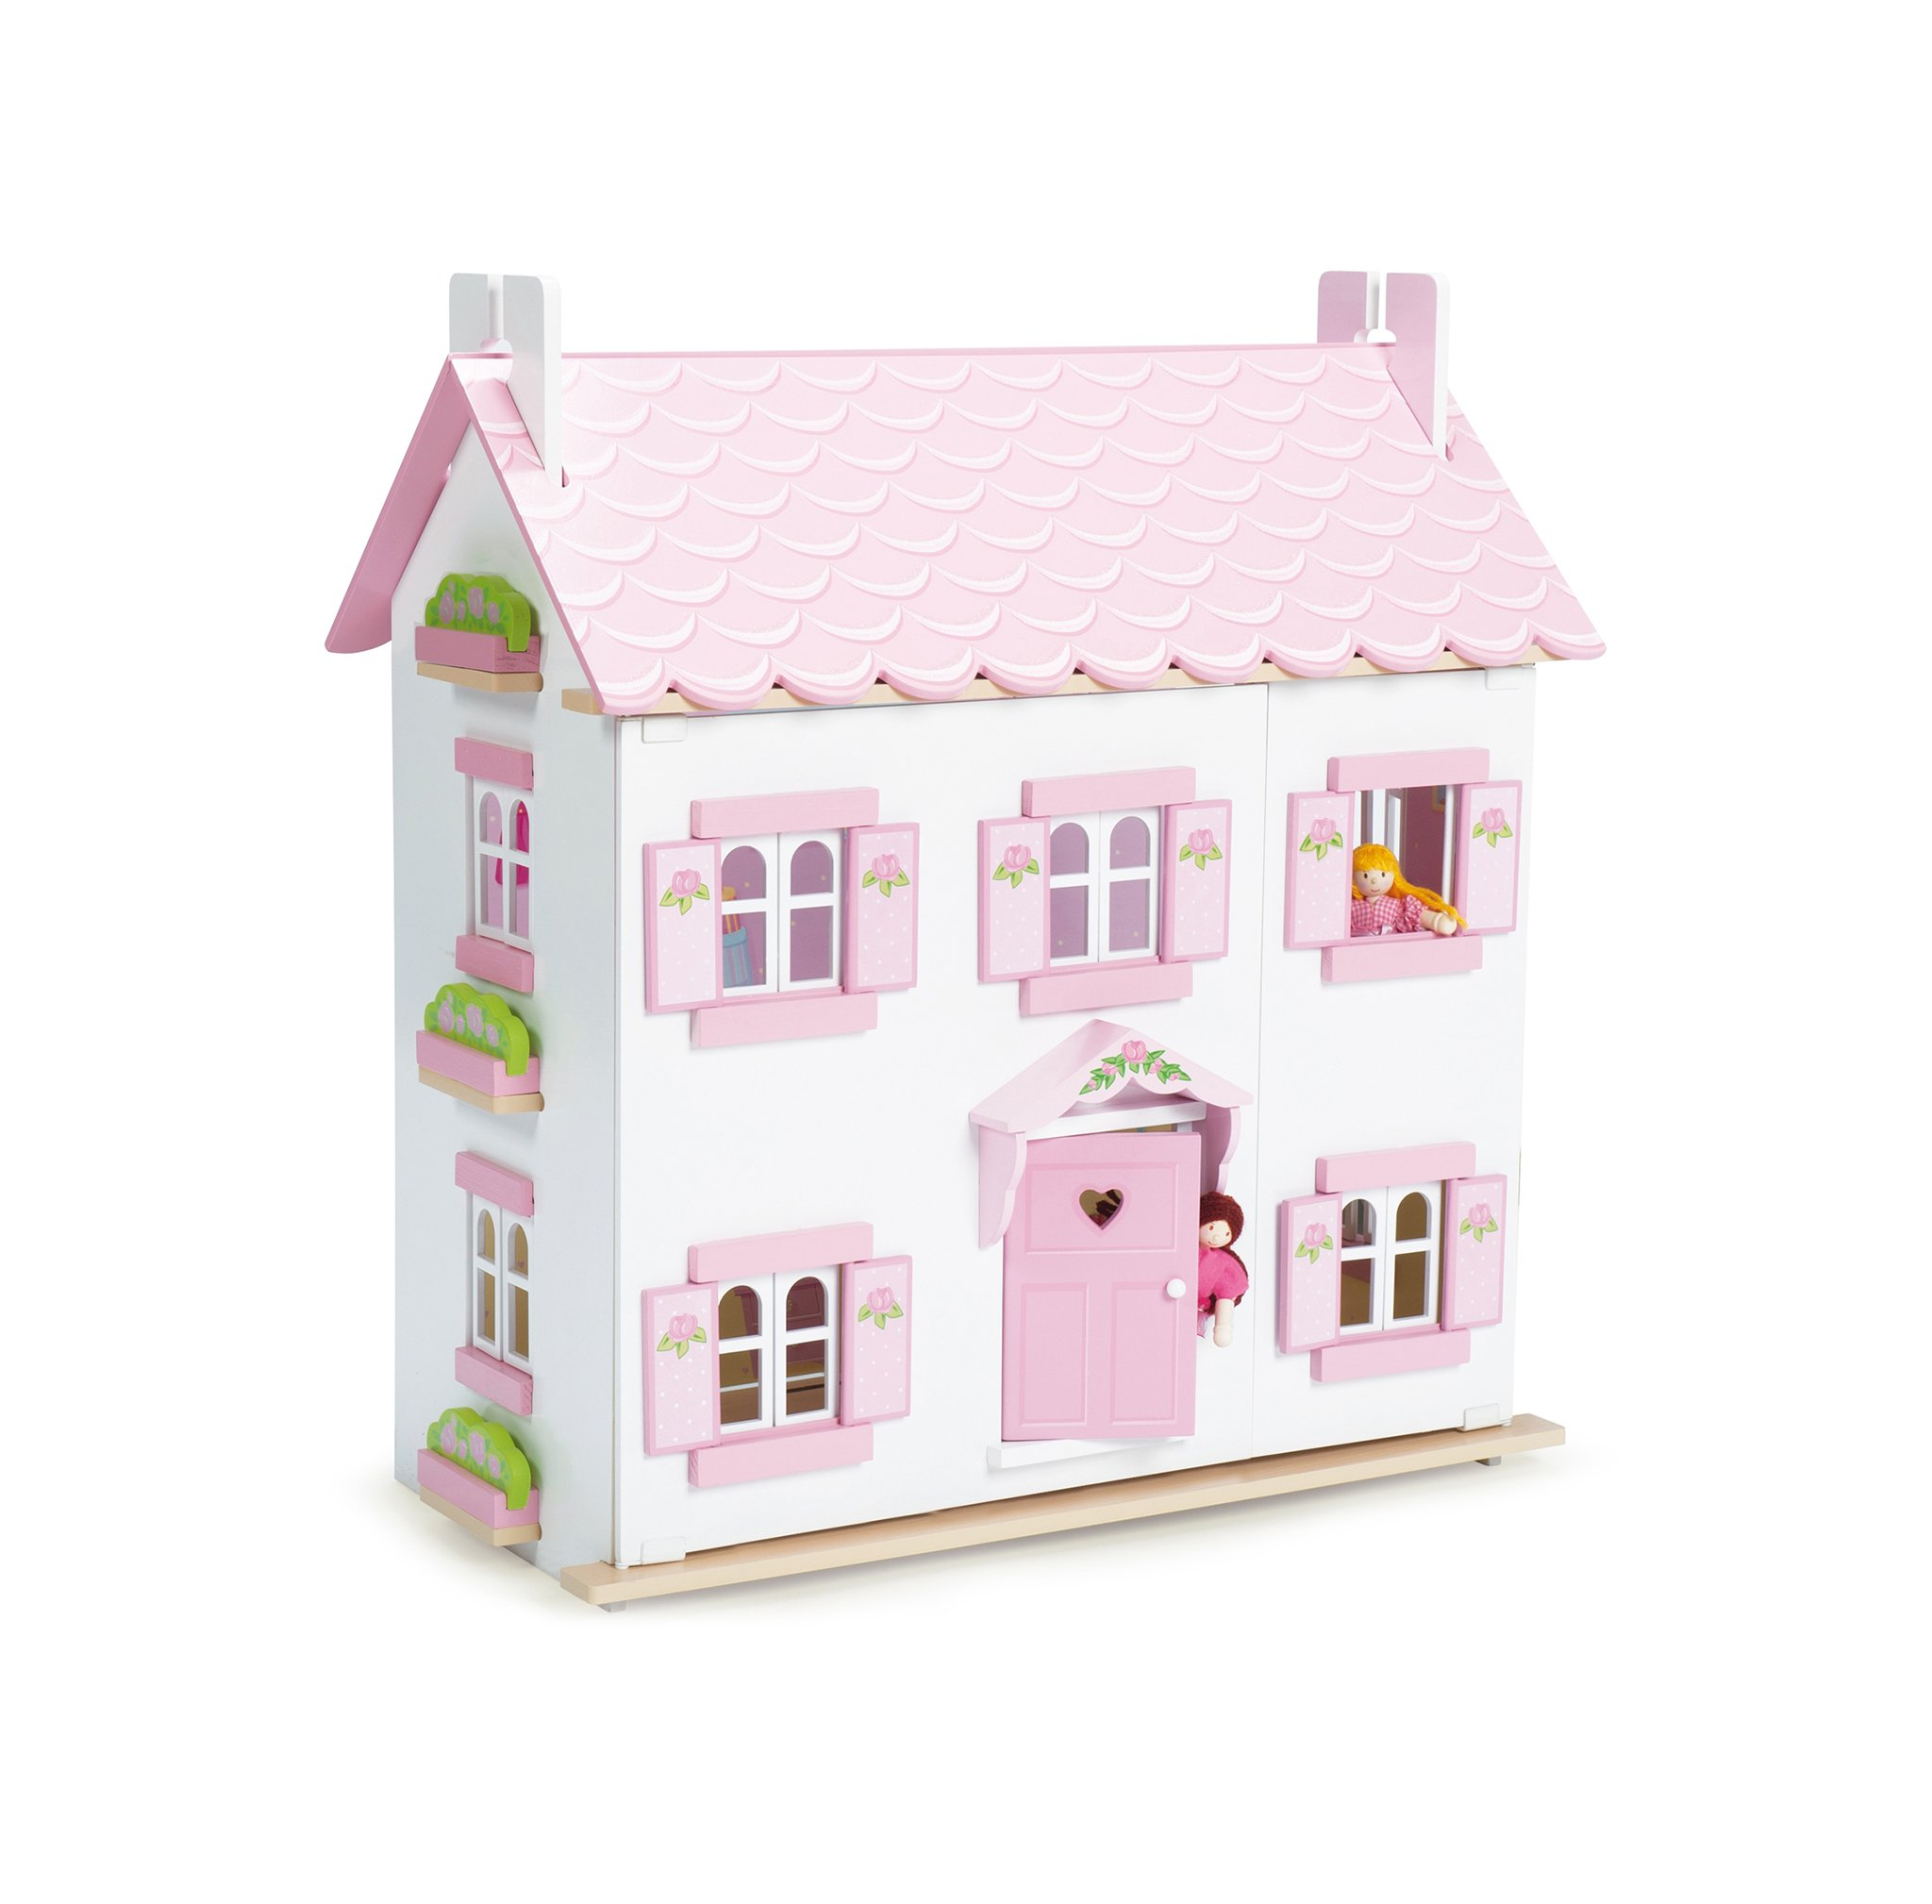 H104-Sophie-Pink-Wooden-Quality-Dolls-House-3-years-Kids-Girl.jpg